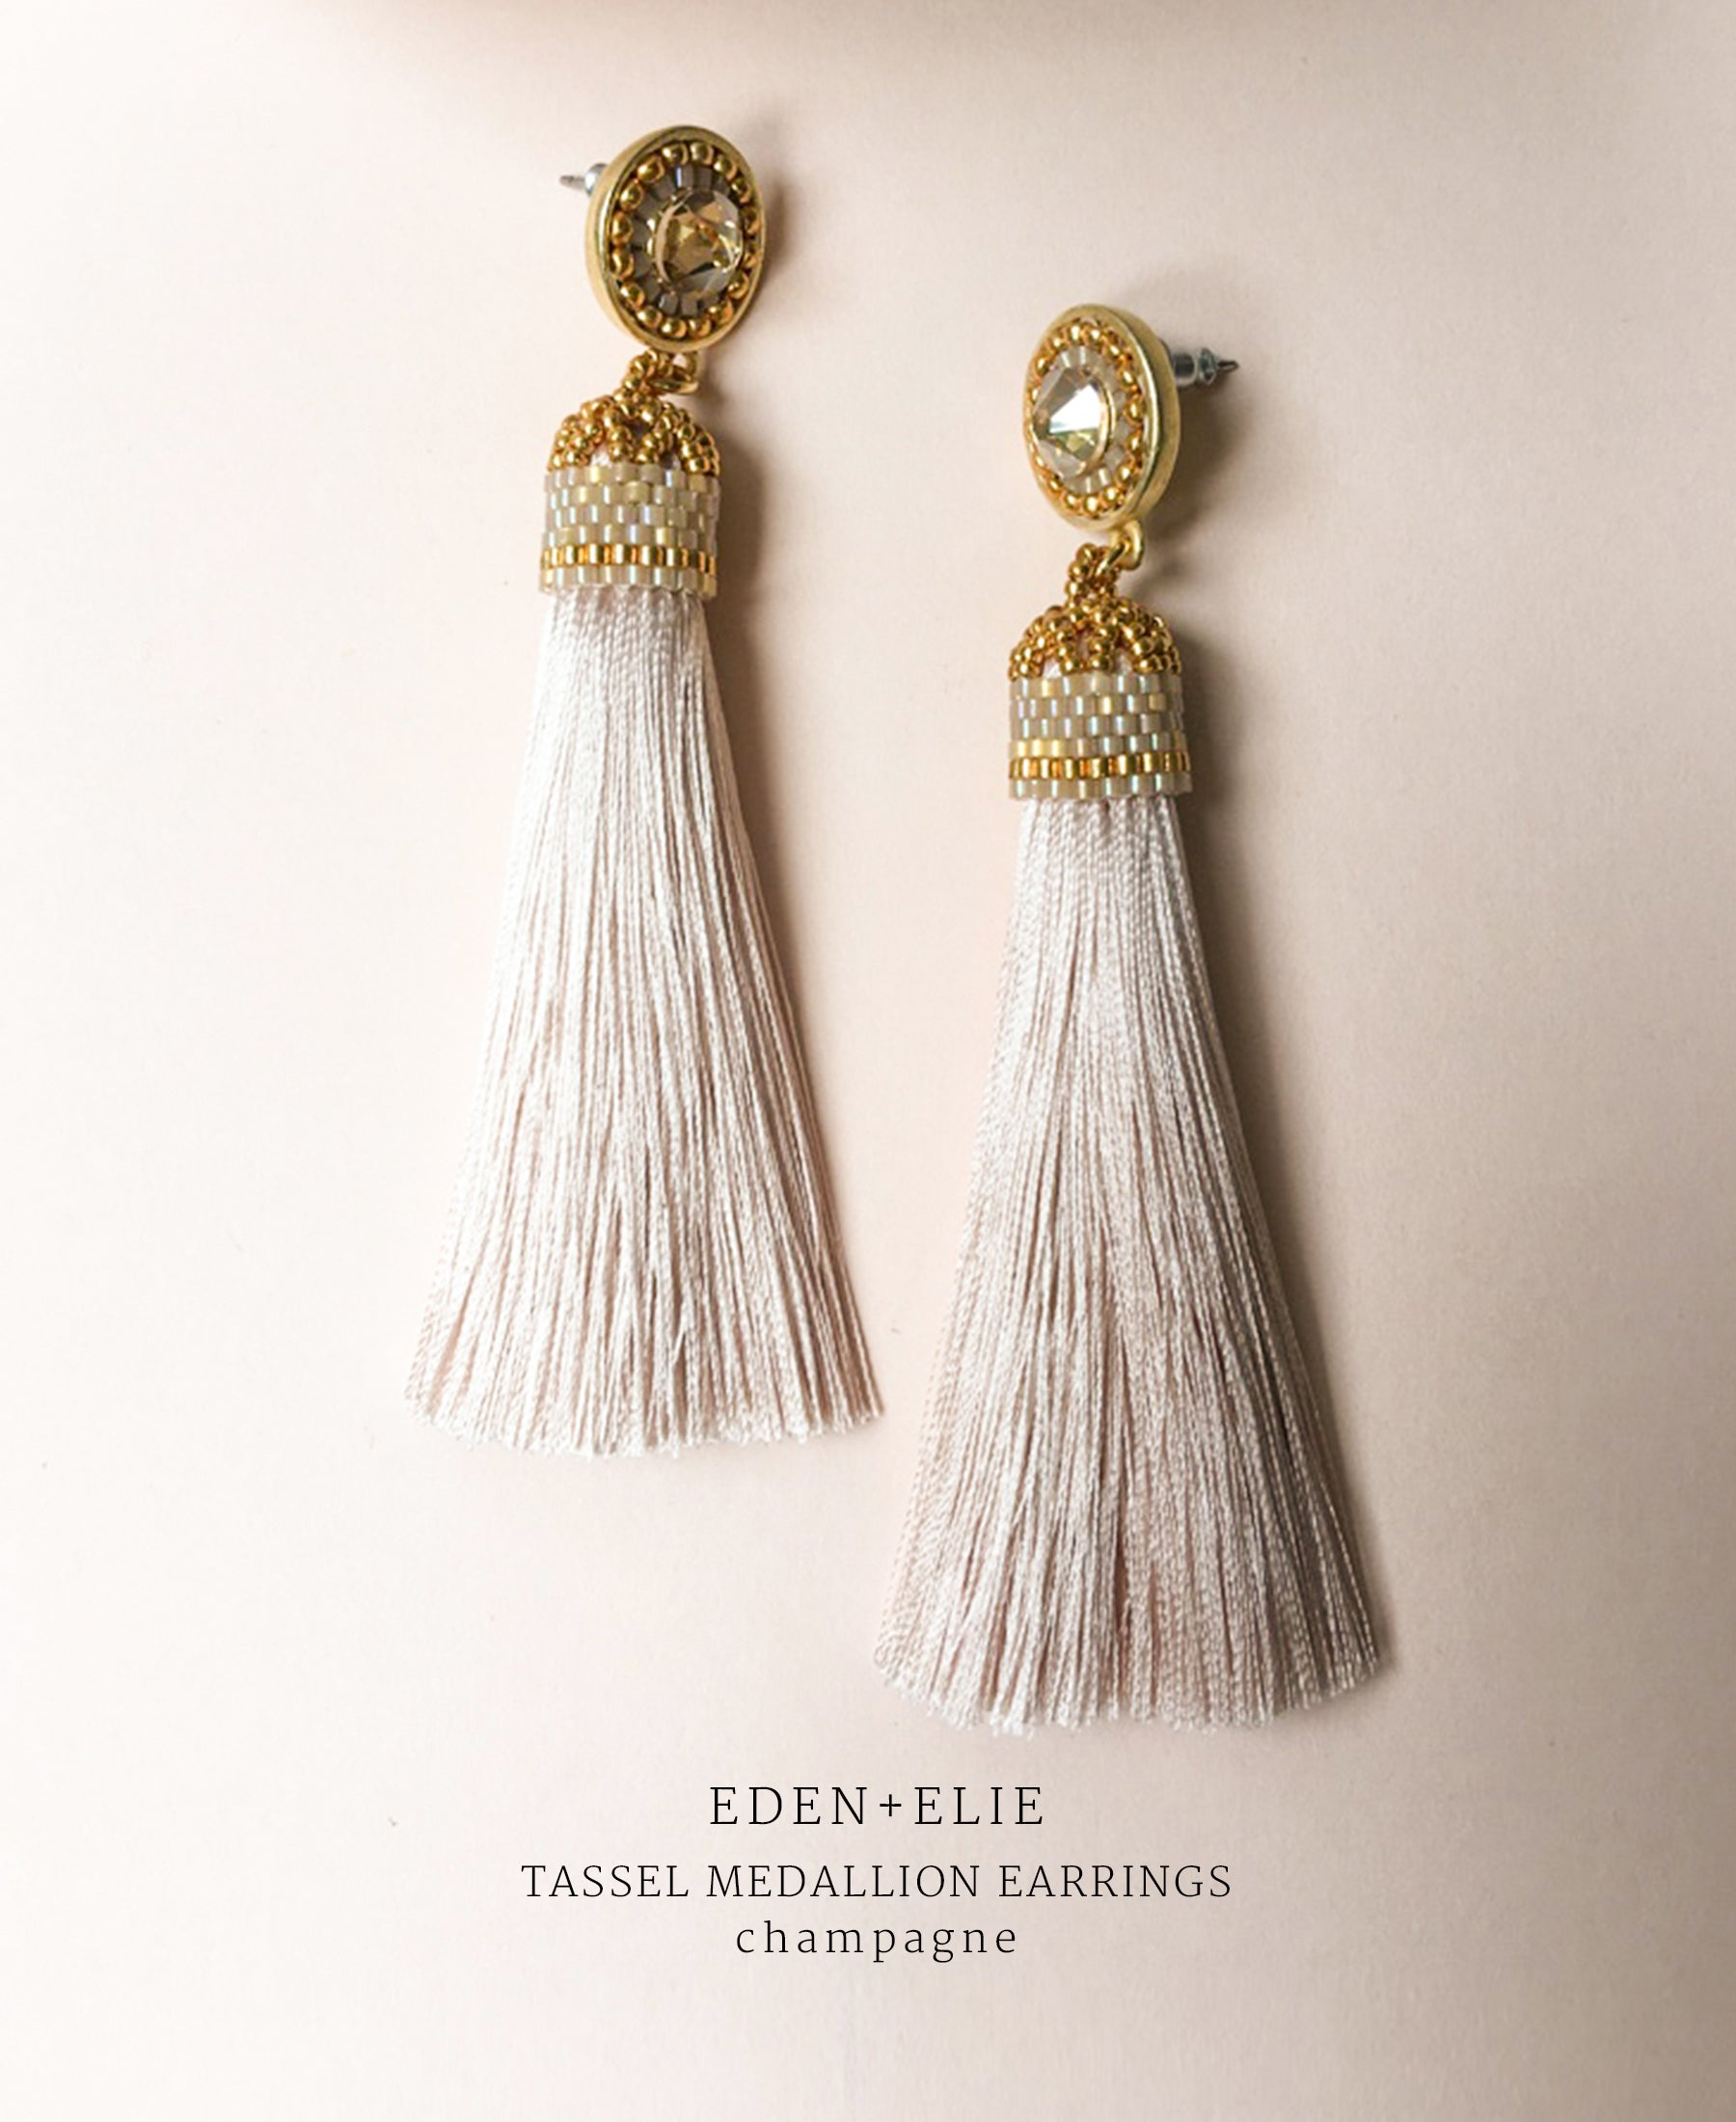 EDEN + ELIE silk tassel statement earrings - champagne